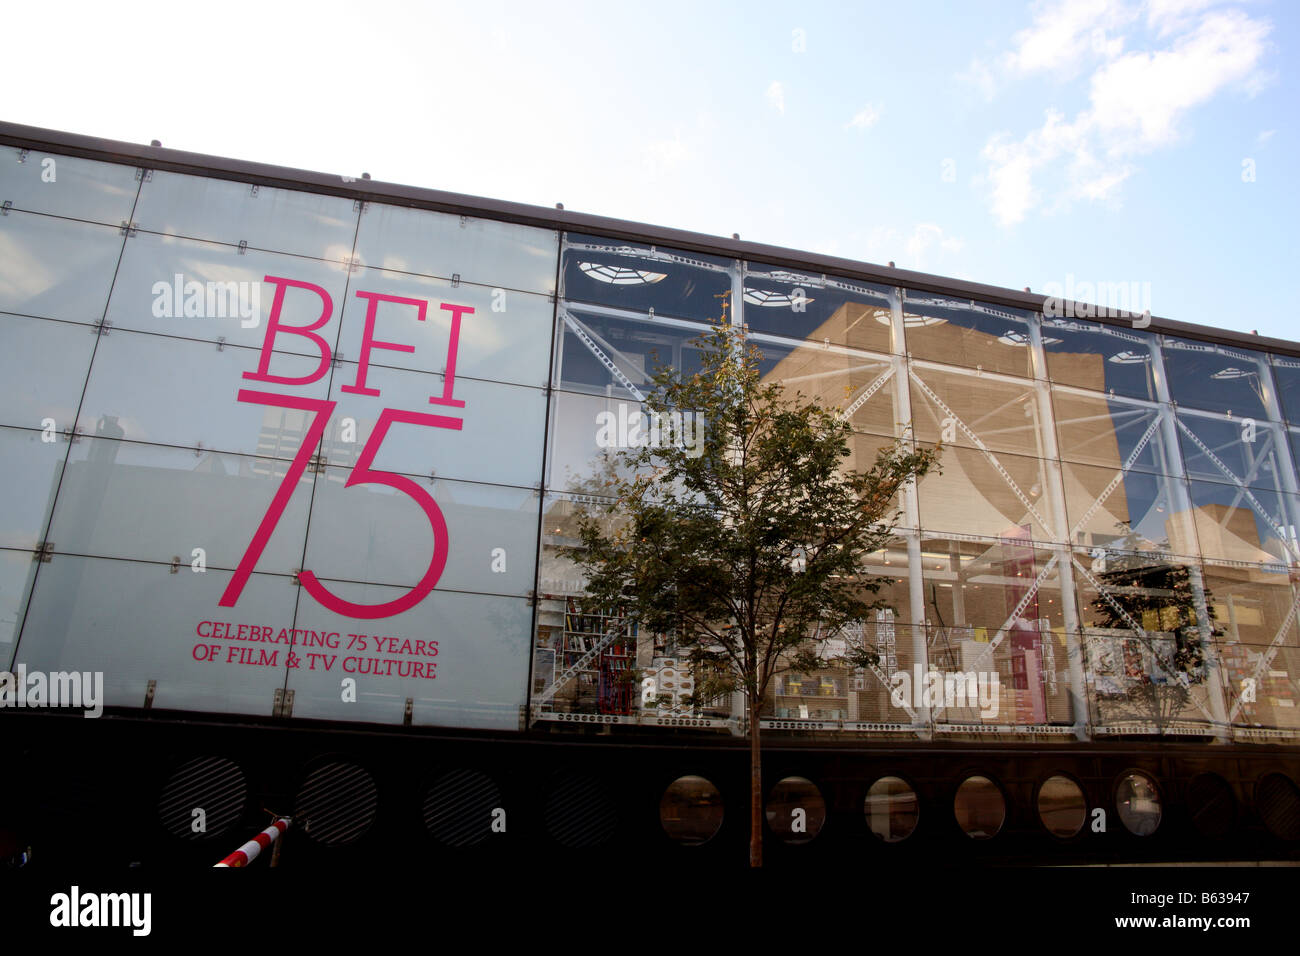 British Film Institute South Bank London - Stock Image